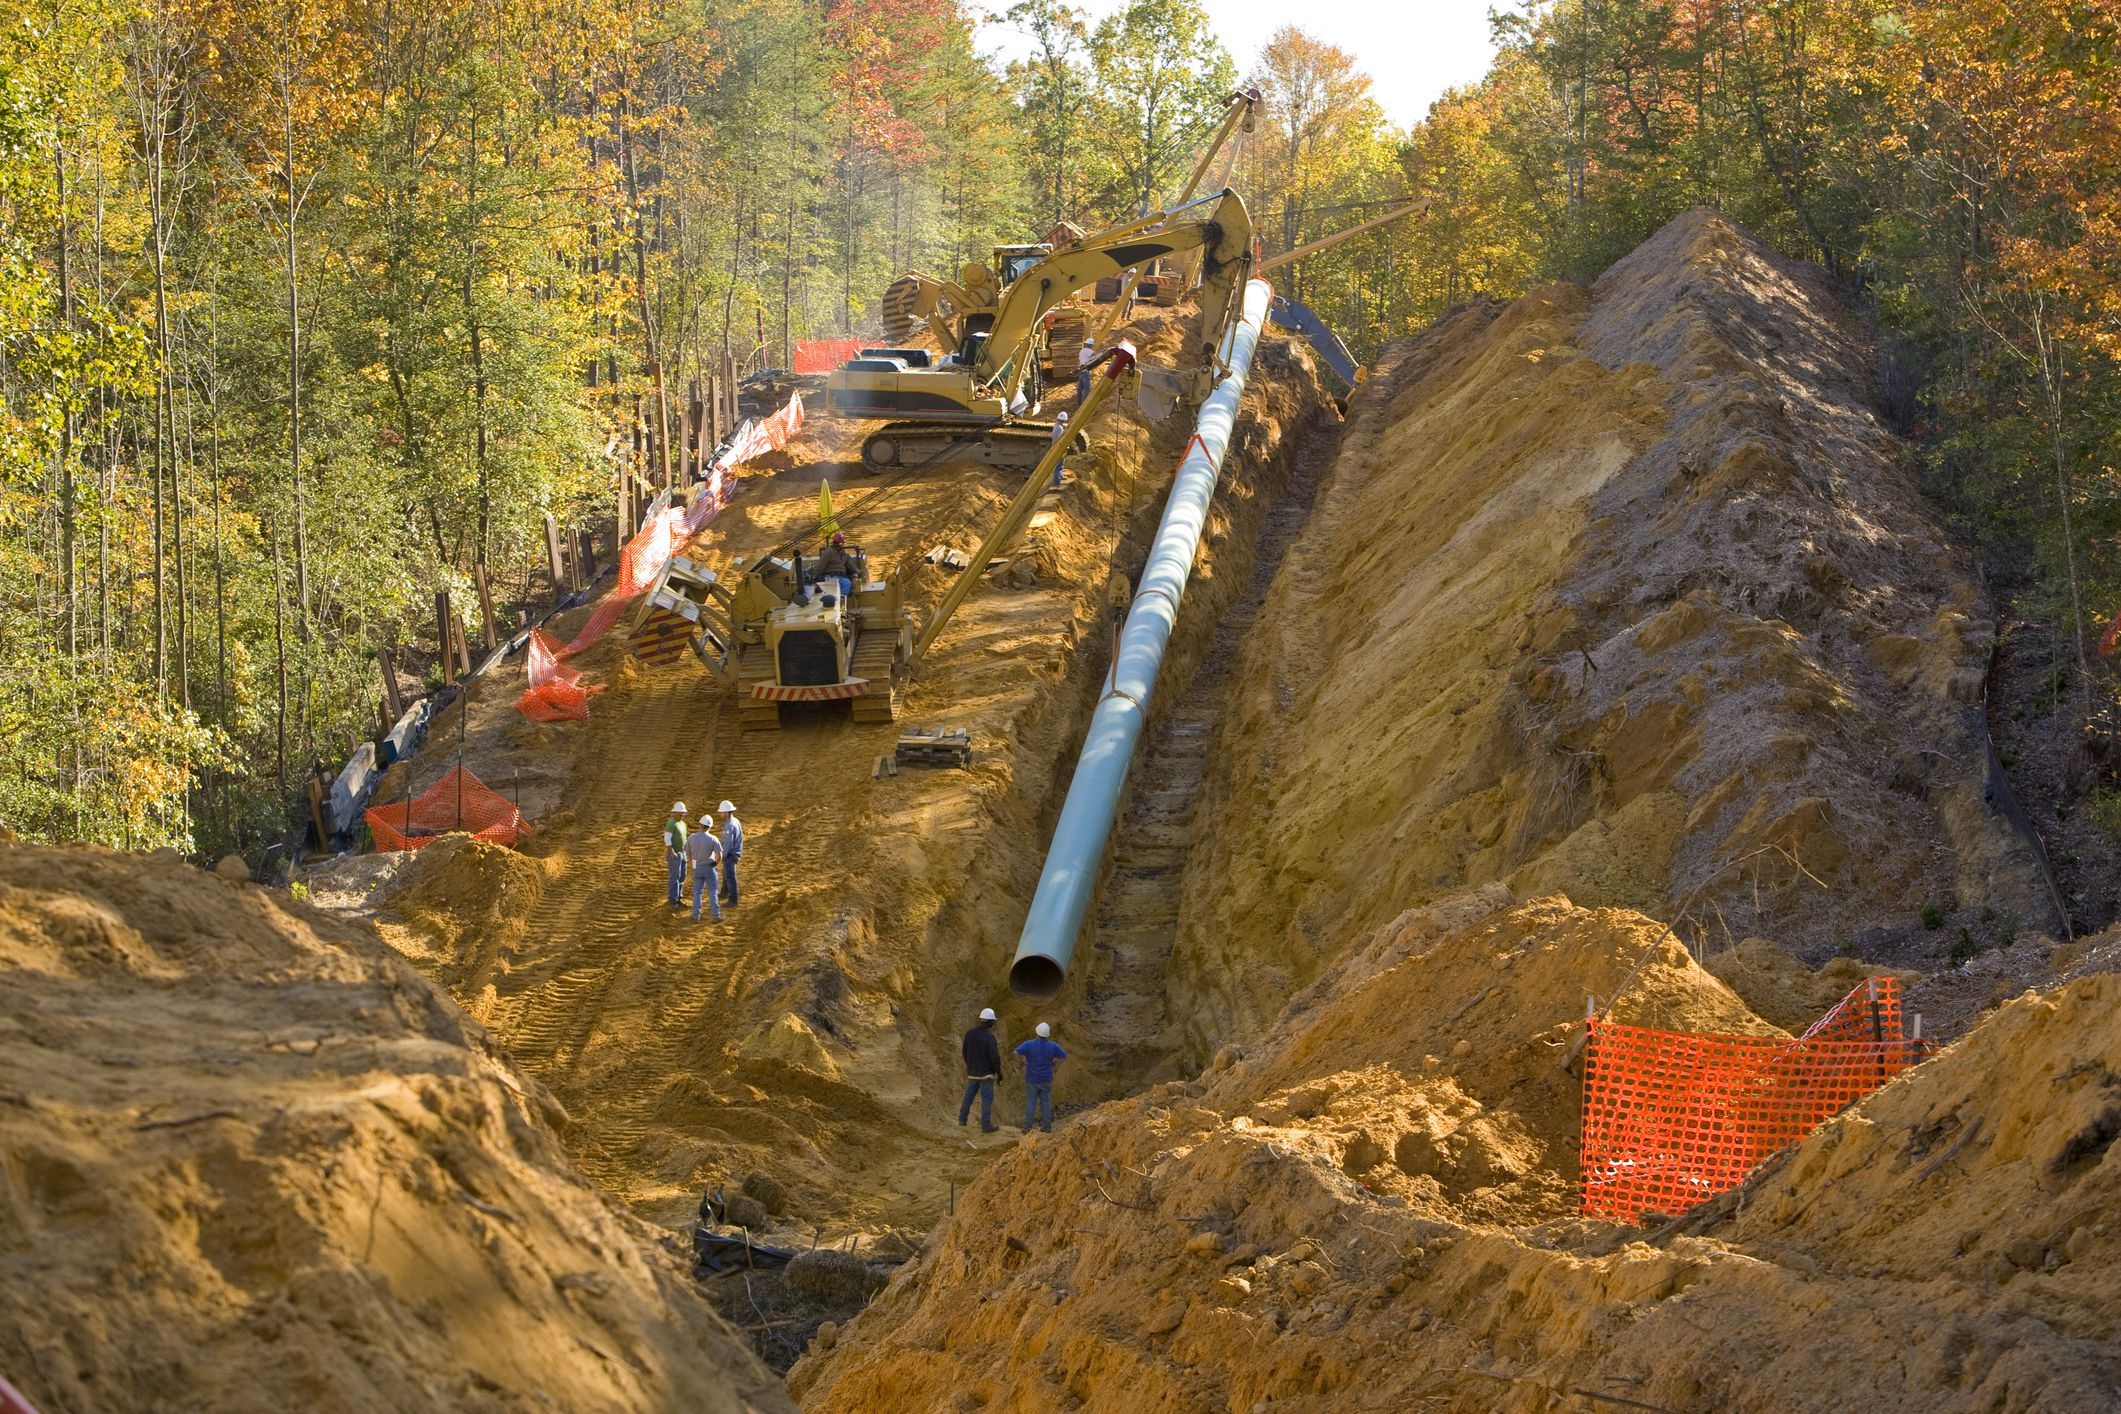 Pipeline being installed in forest